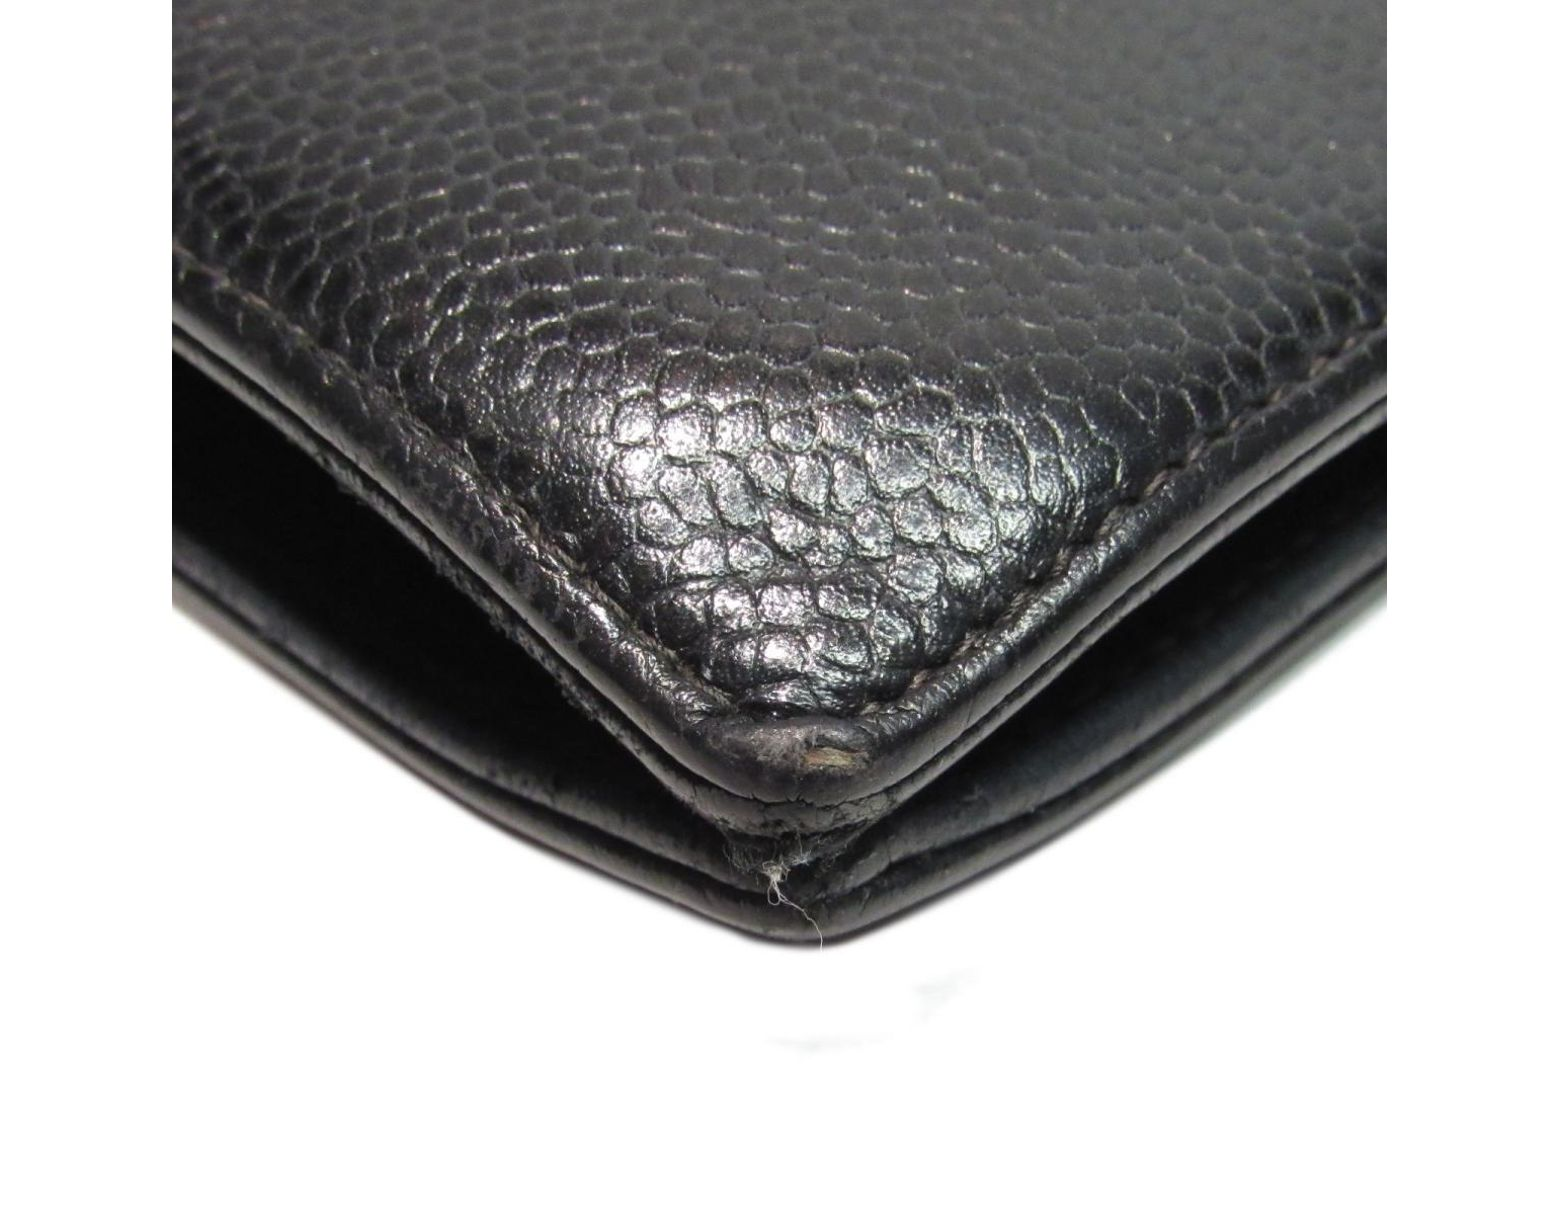 7d831ba4c48b Chanel Authentic Cc Bi-fold Long Wallet Purse Caviar Leather Black Used  Vintage in Black - Lyst